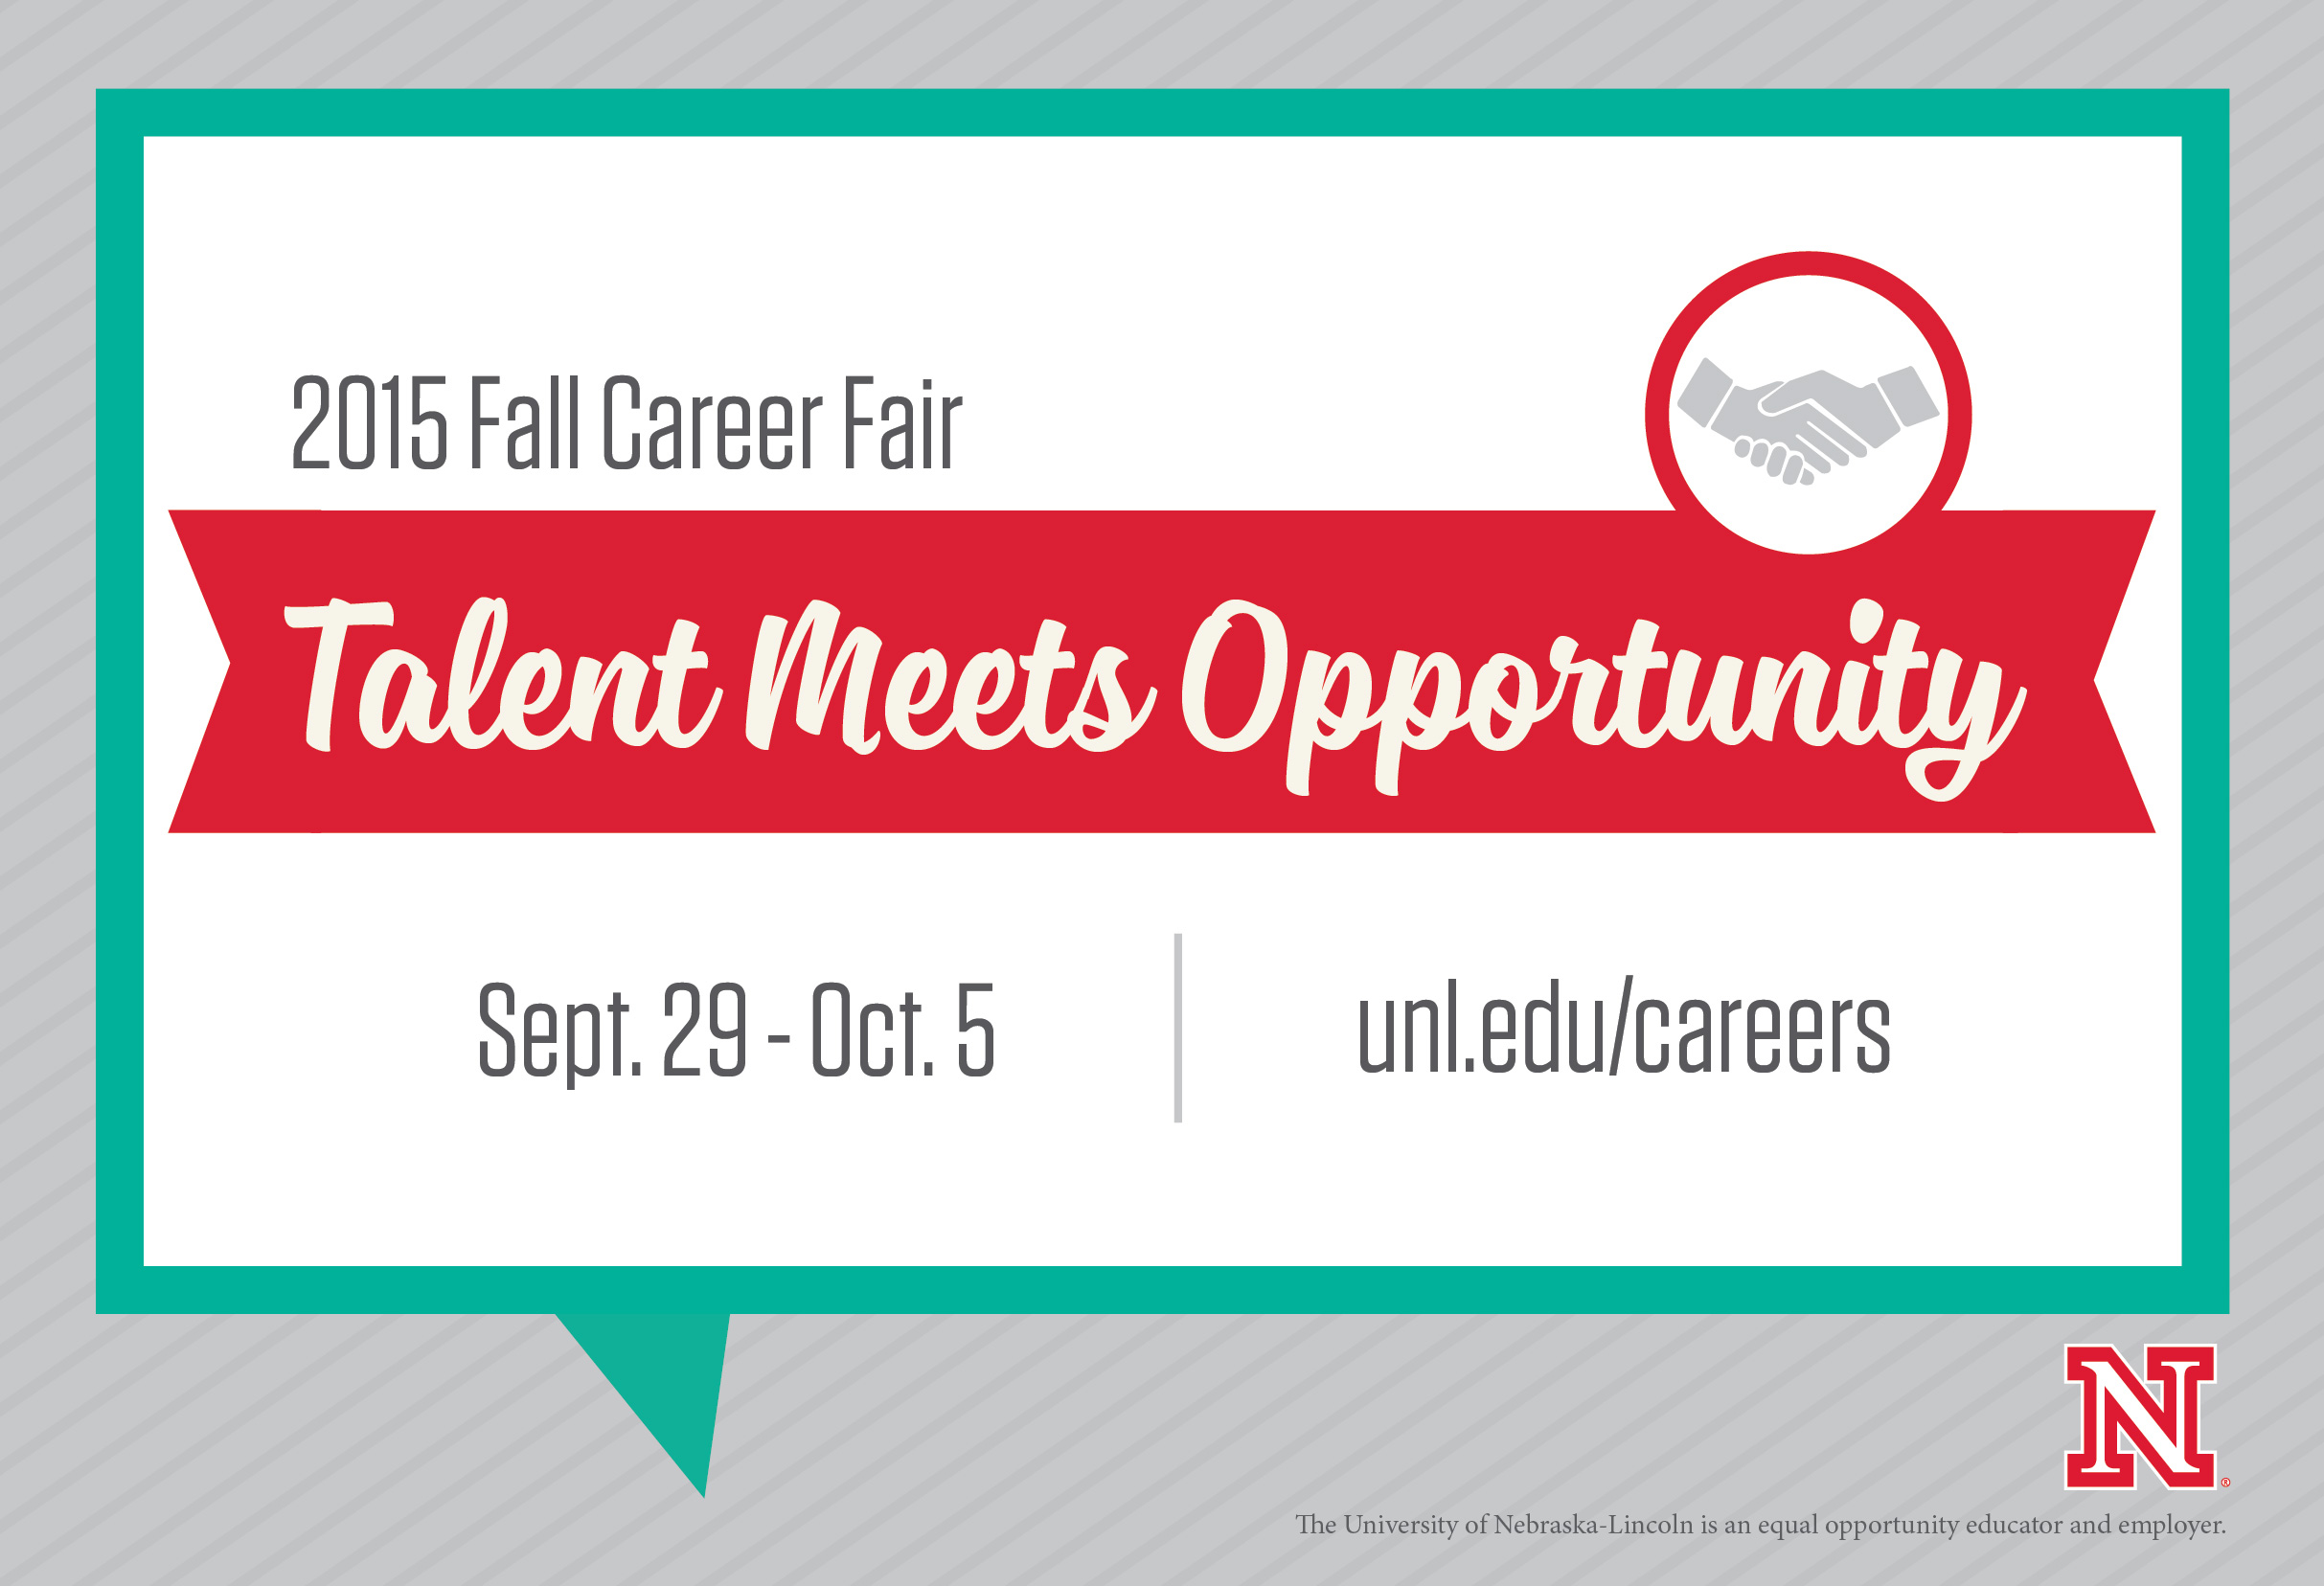 Attend the Fall 2015 Career Fairs, Sept. 29 - Oct. 5.